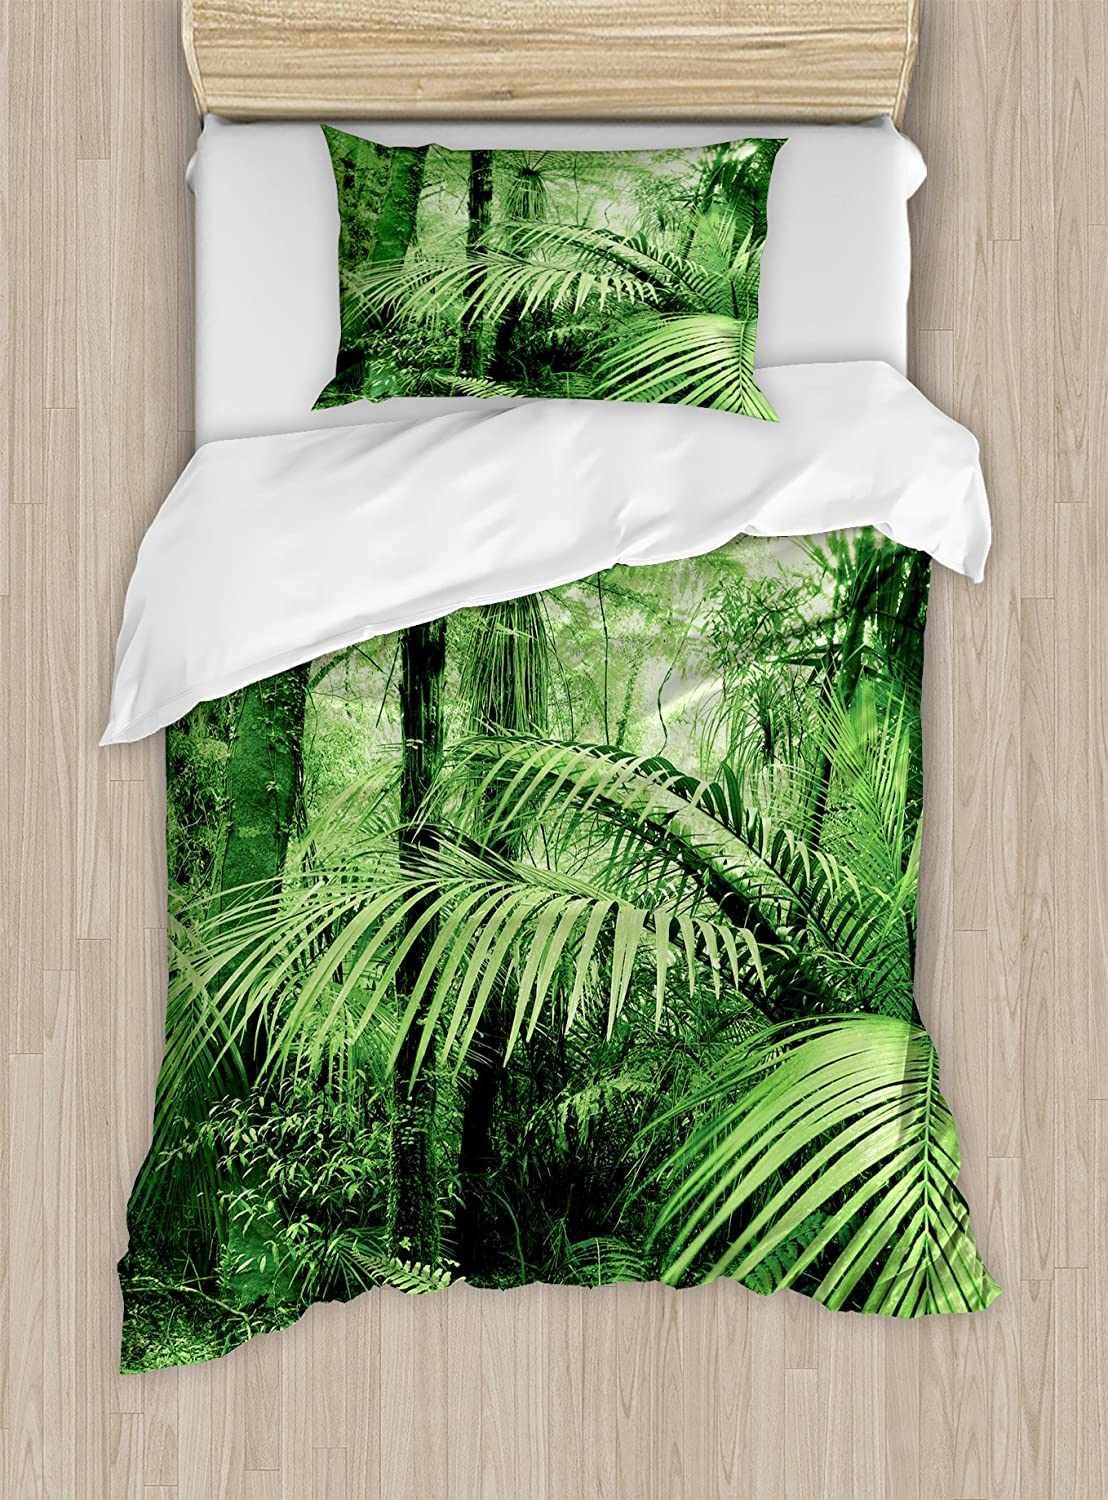 Ambesonne Rainforest Duvet Cover Set Twin Size, Palm Trees and Exotic Plants in Tropical Jungle Wild Nature Zen Theme Picture Illustration, A Decorative 2 Piece Bedding Set with 1 Pillow Sham, Green